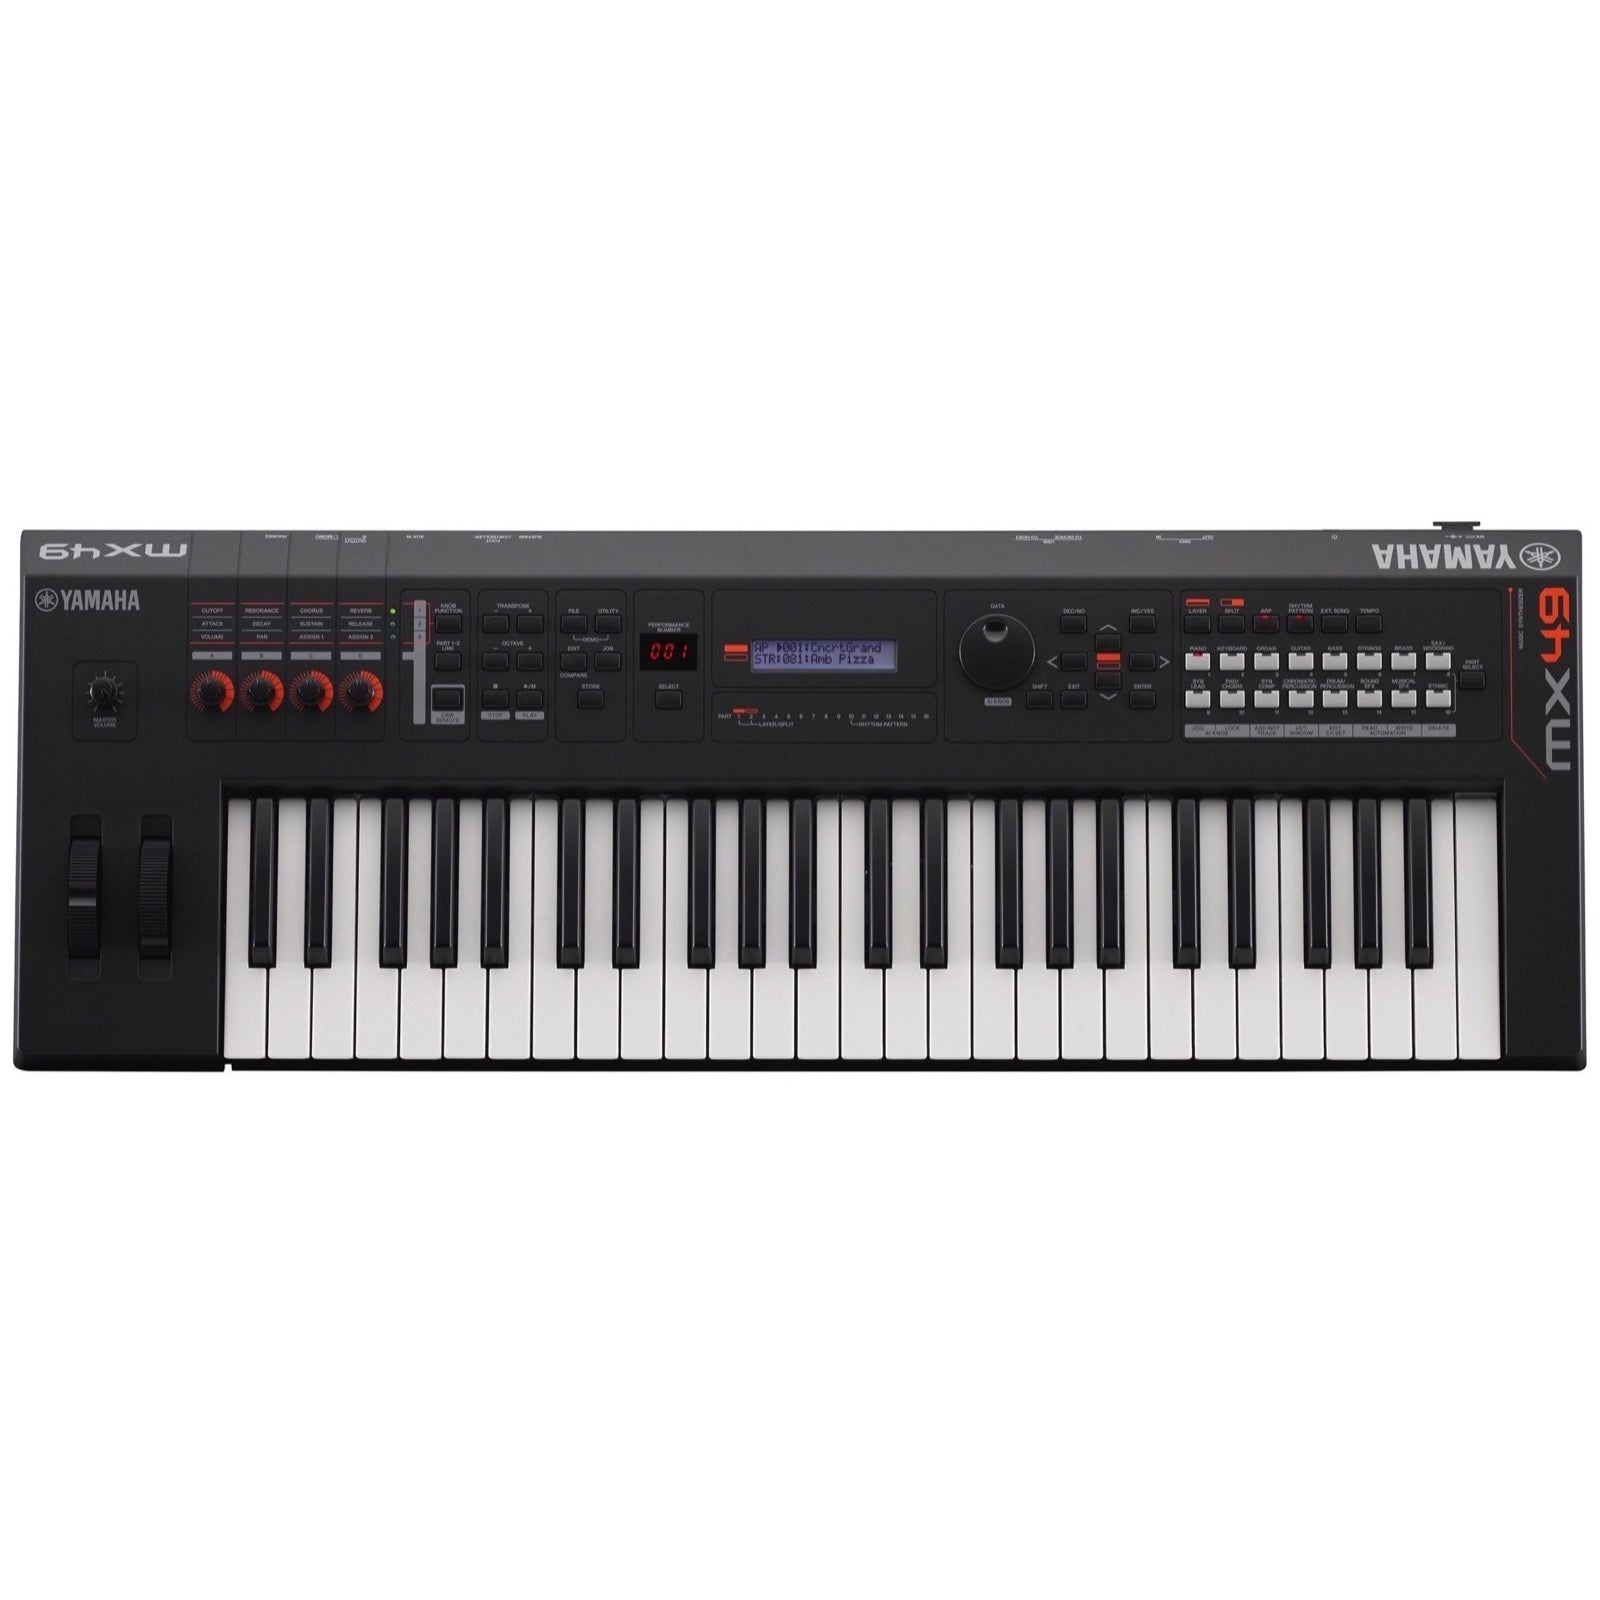 Yamaha MX49 v2 Keyboard Synthesizer, 49-Key, Black